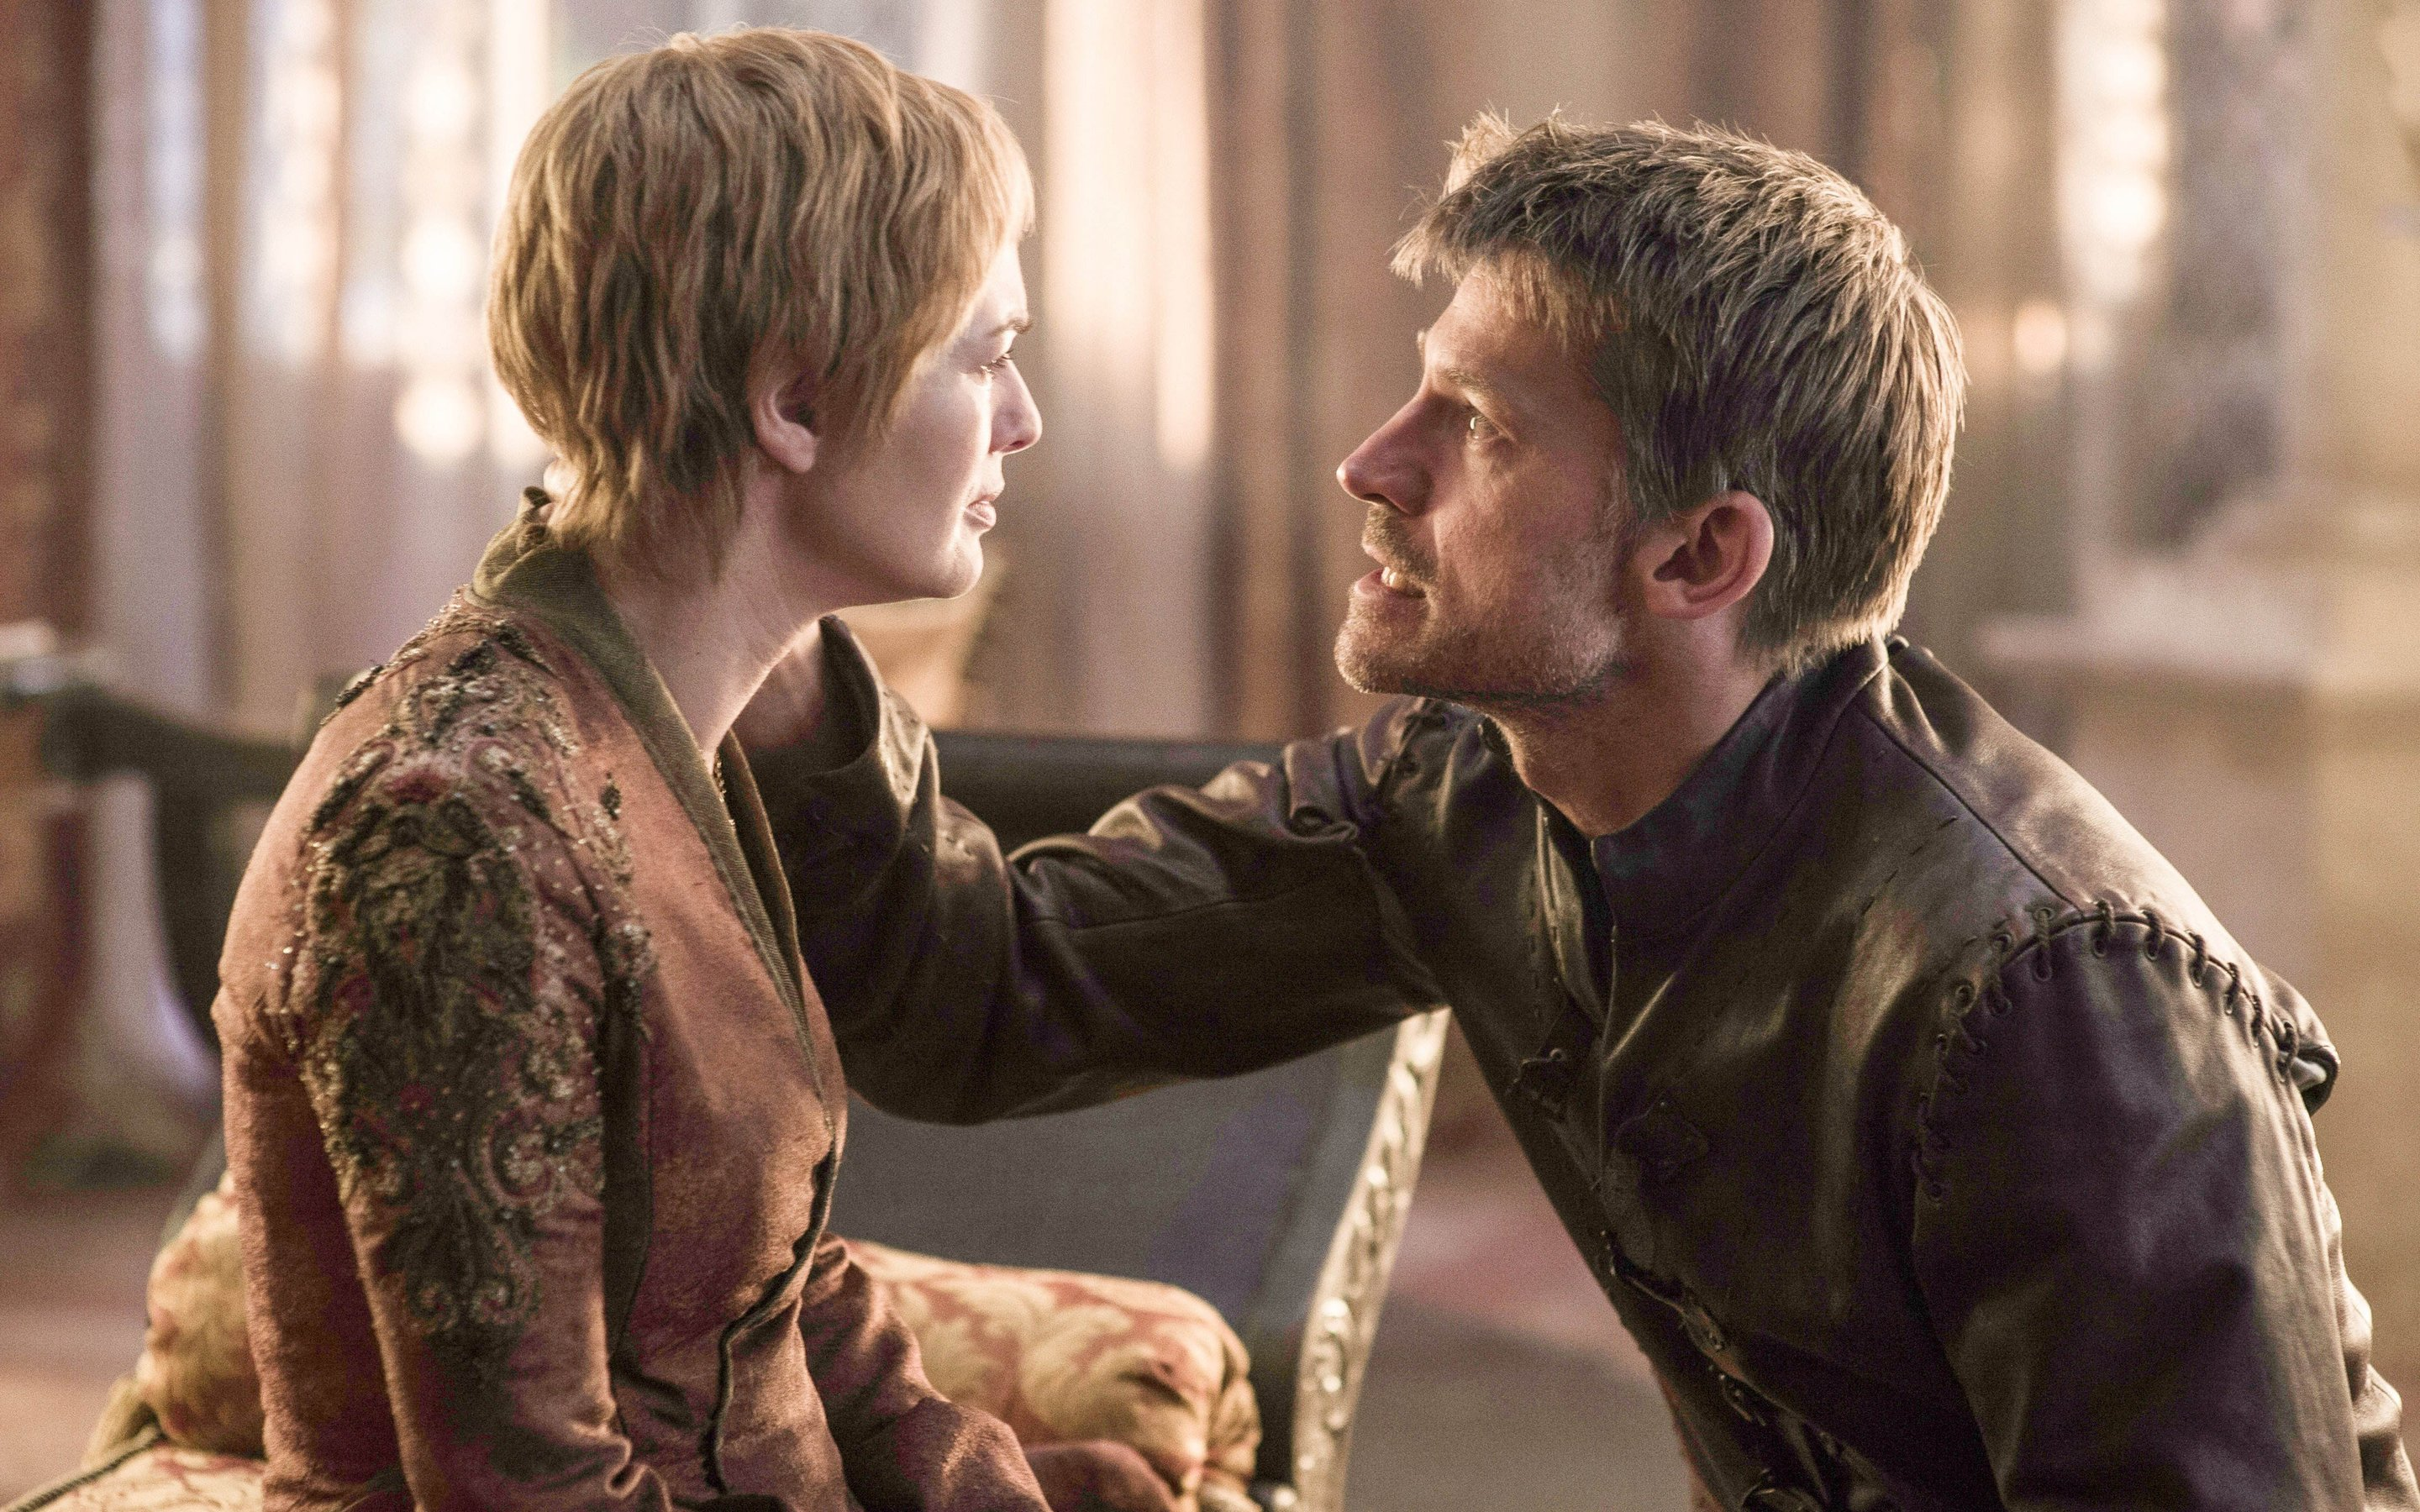 Game of Thrones For the Lannisters Nothing Else Matters Jaime Lannister Cersei lannister